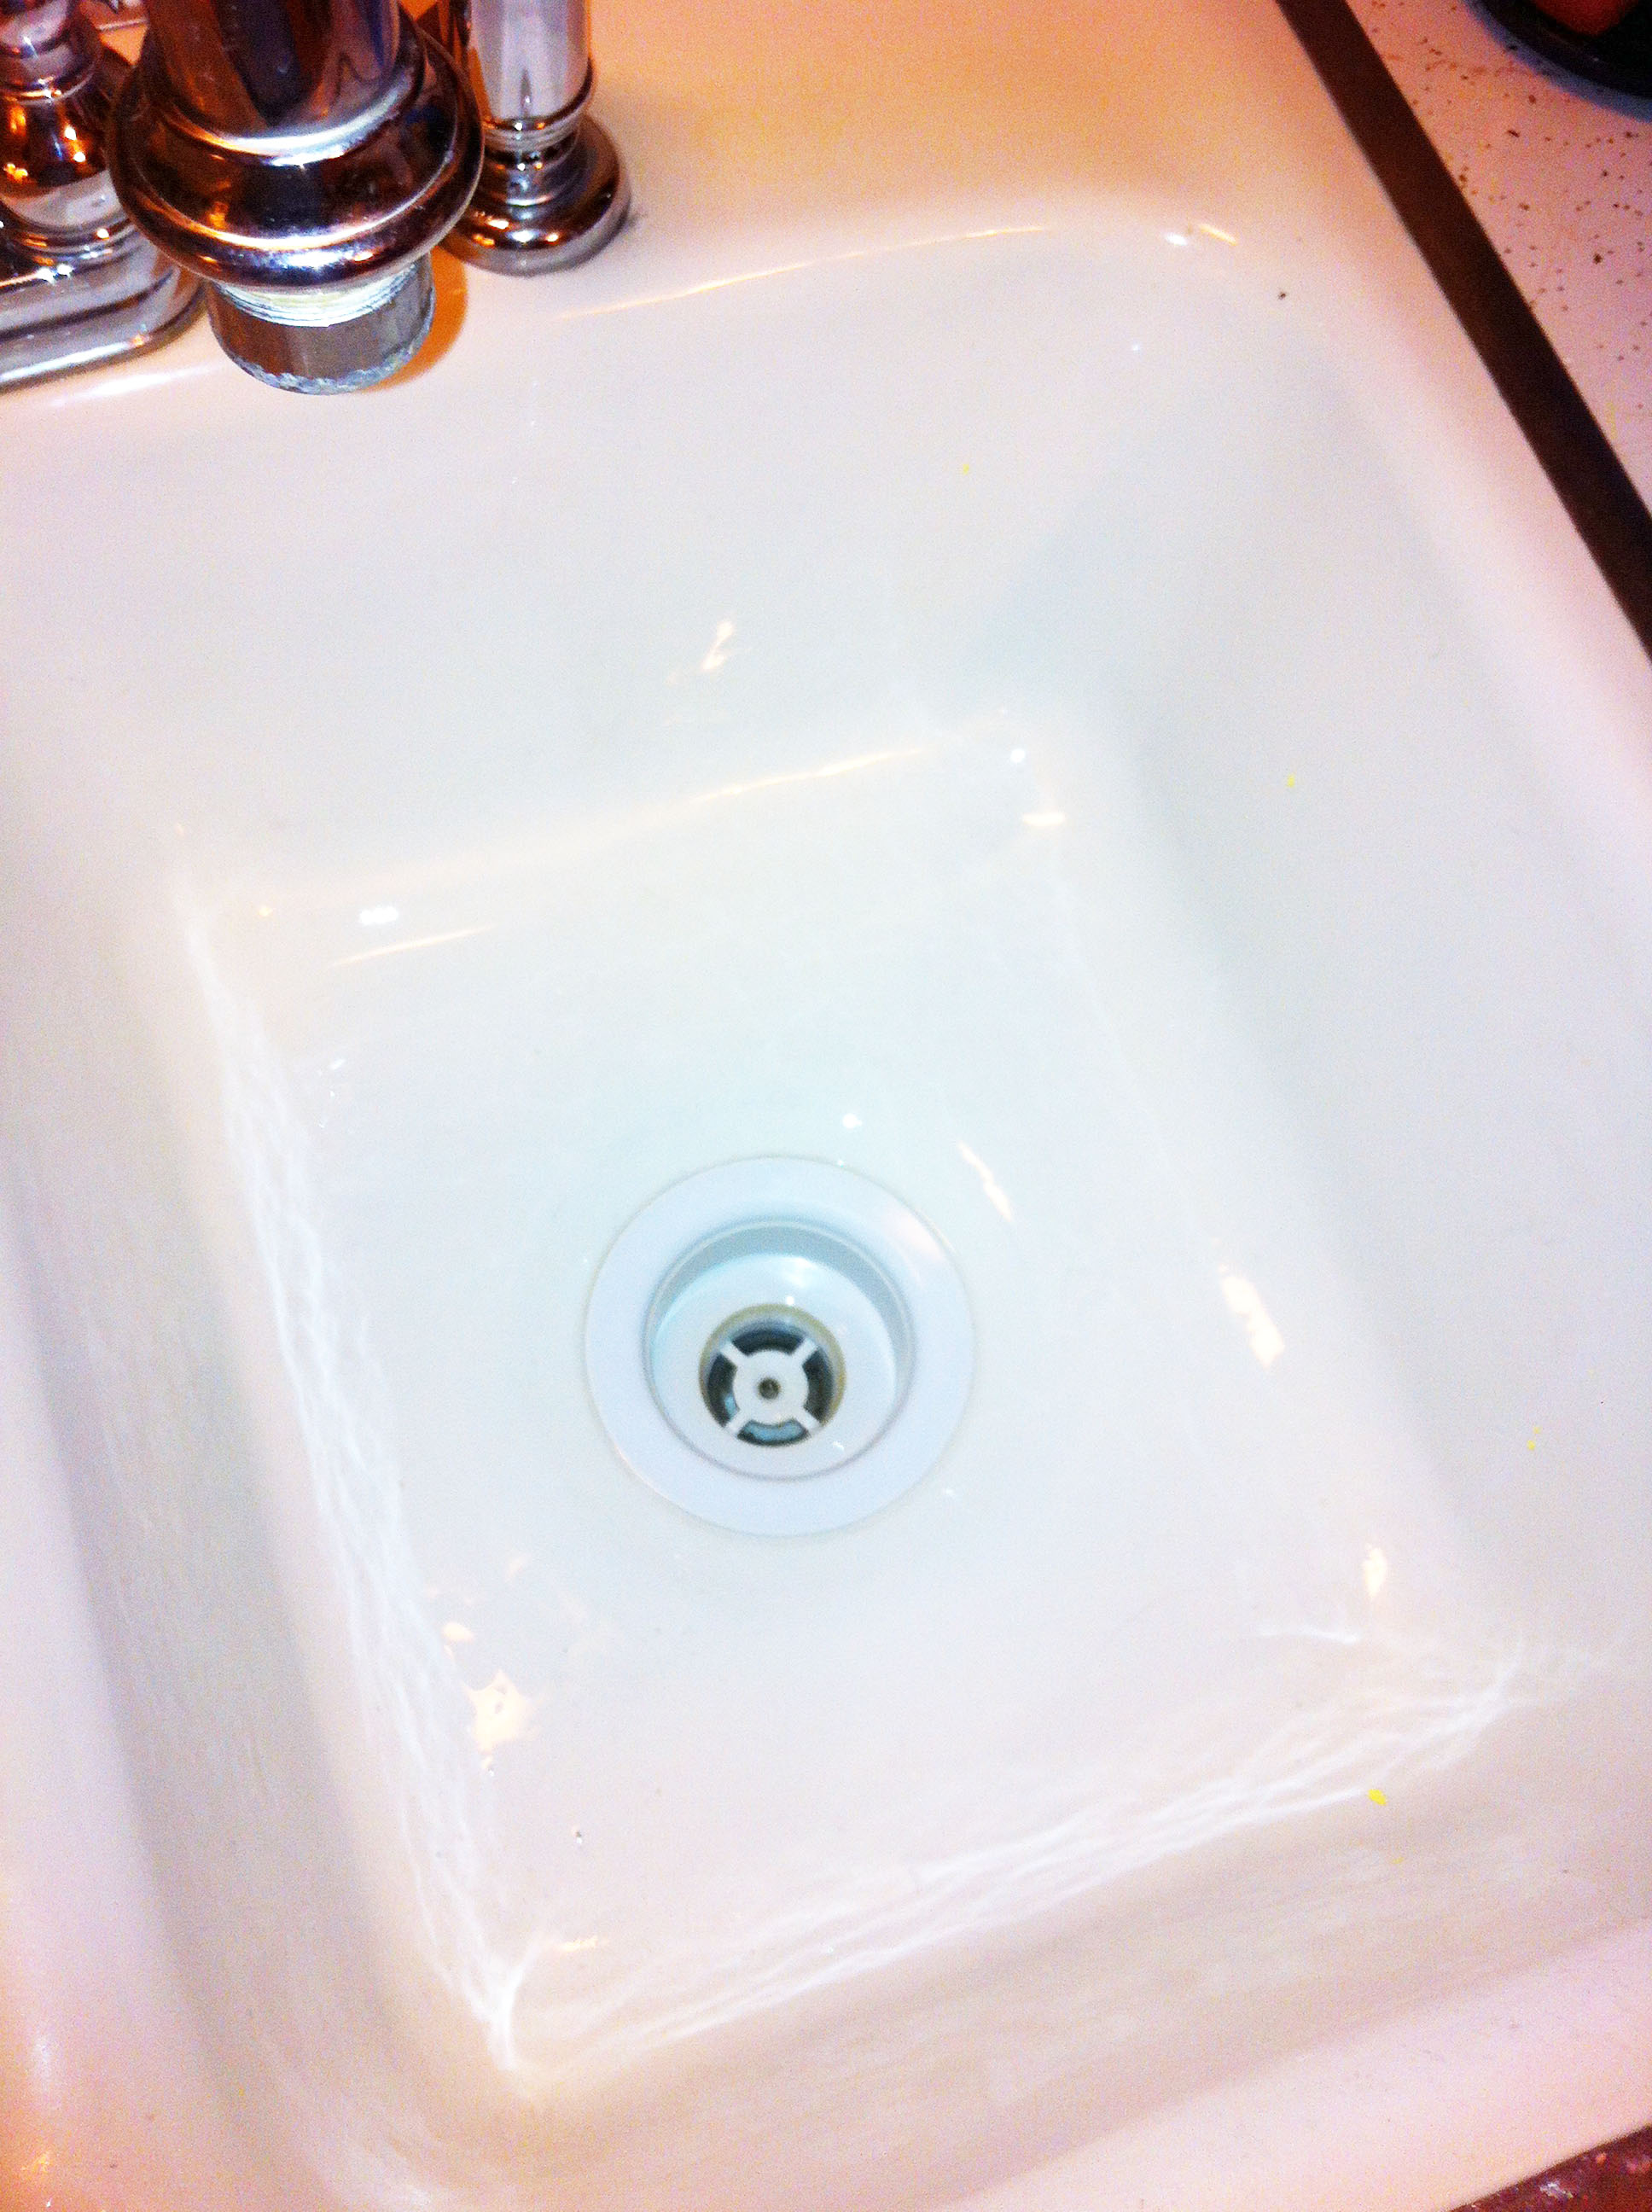 Scratches in Your Porcelain Sink? Meet Your New Best Friend! | One ...